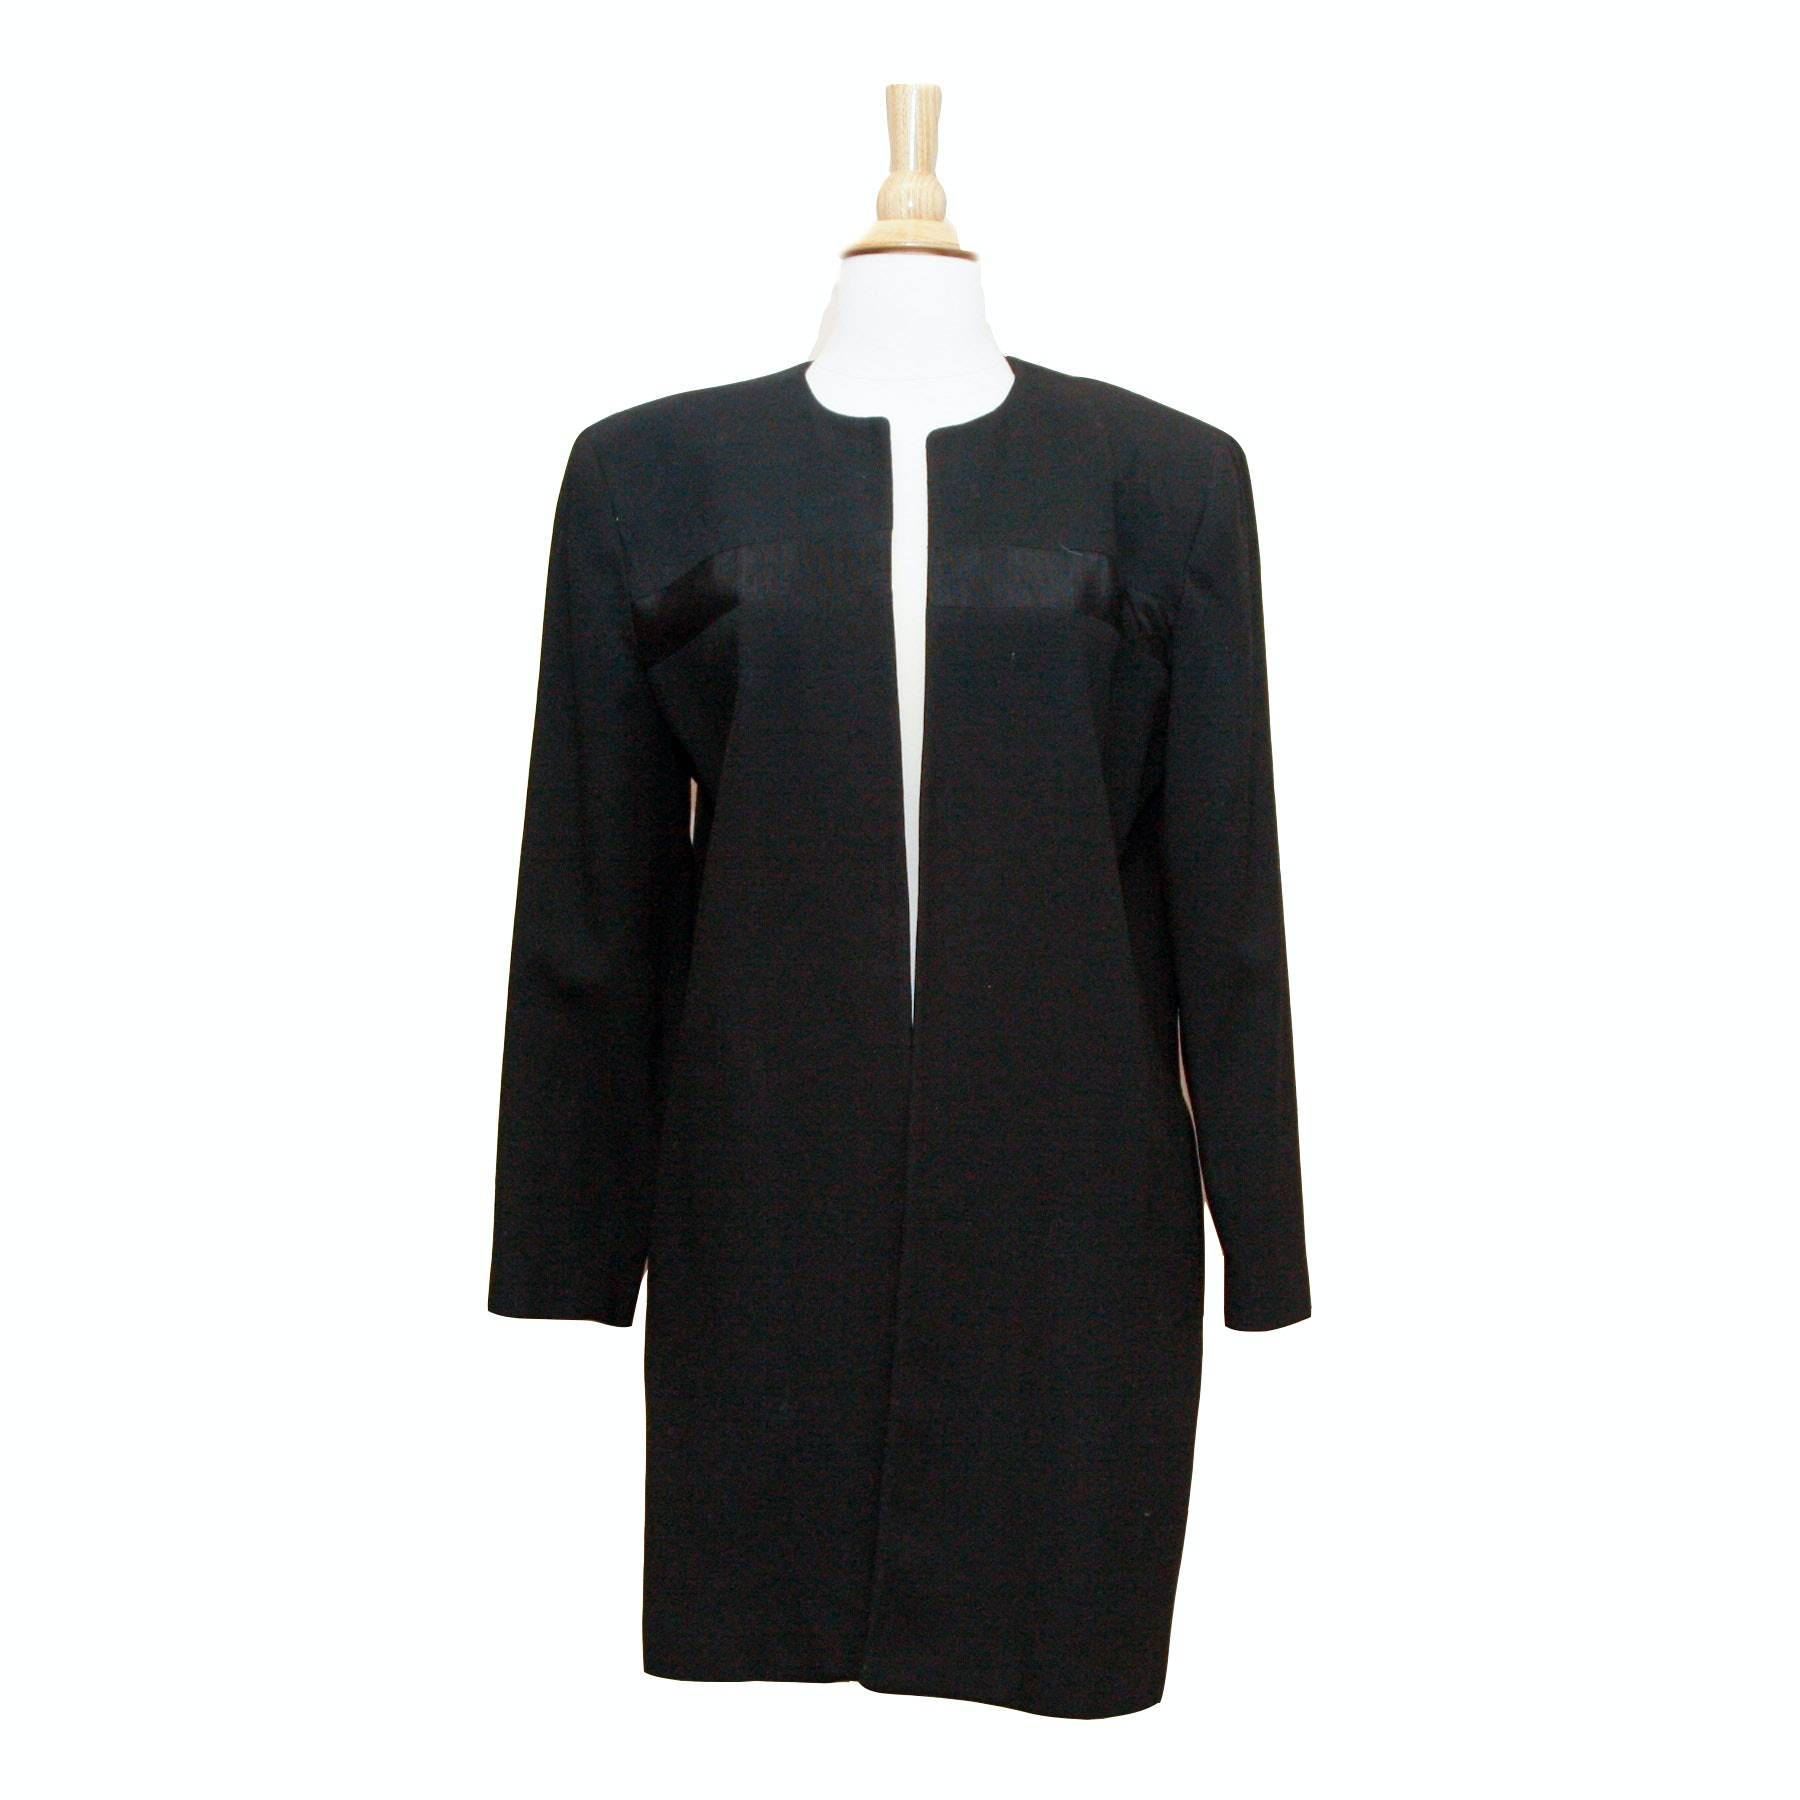 Saks Fifth Avenue The Works Black Wool Coat